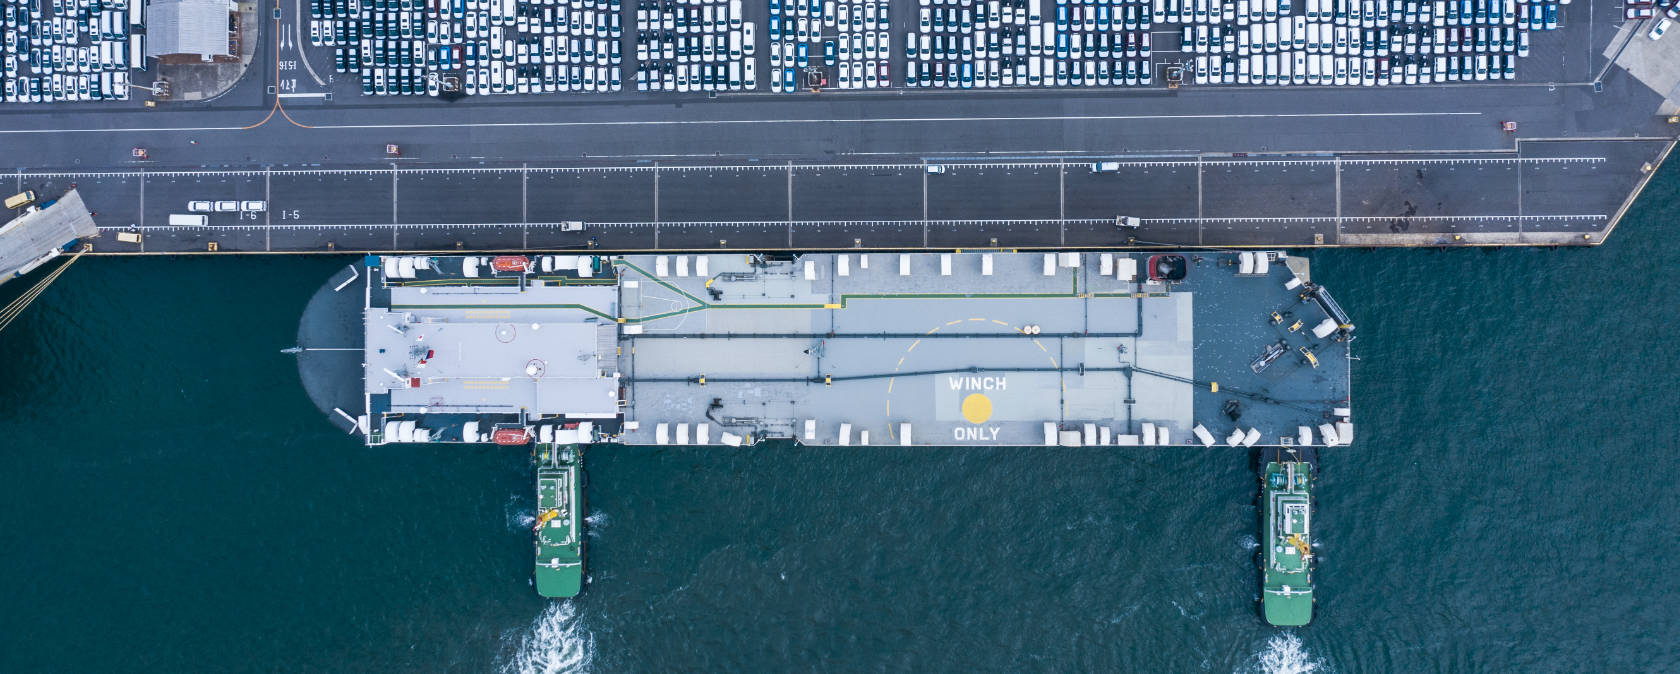 A cargo ship gets pushed into dock